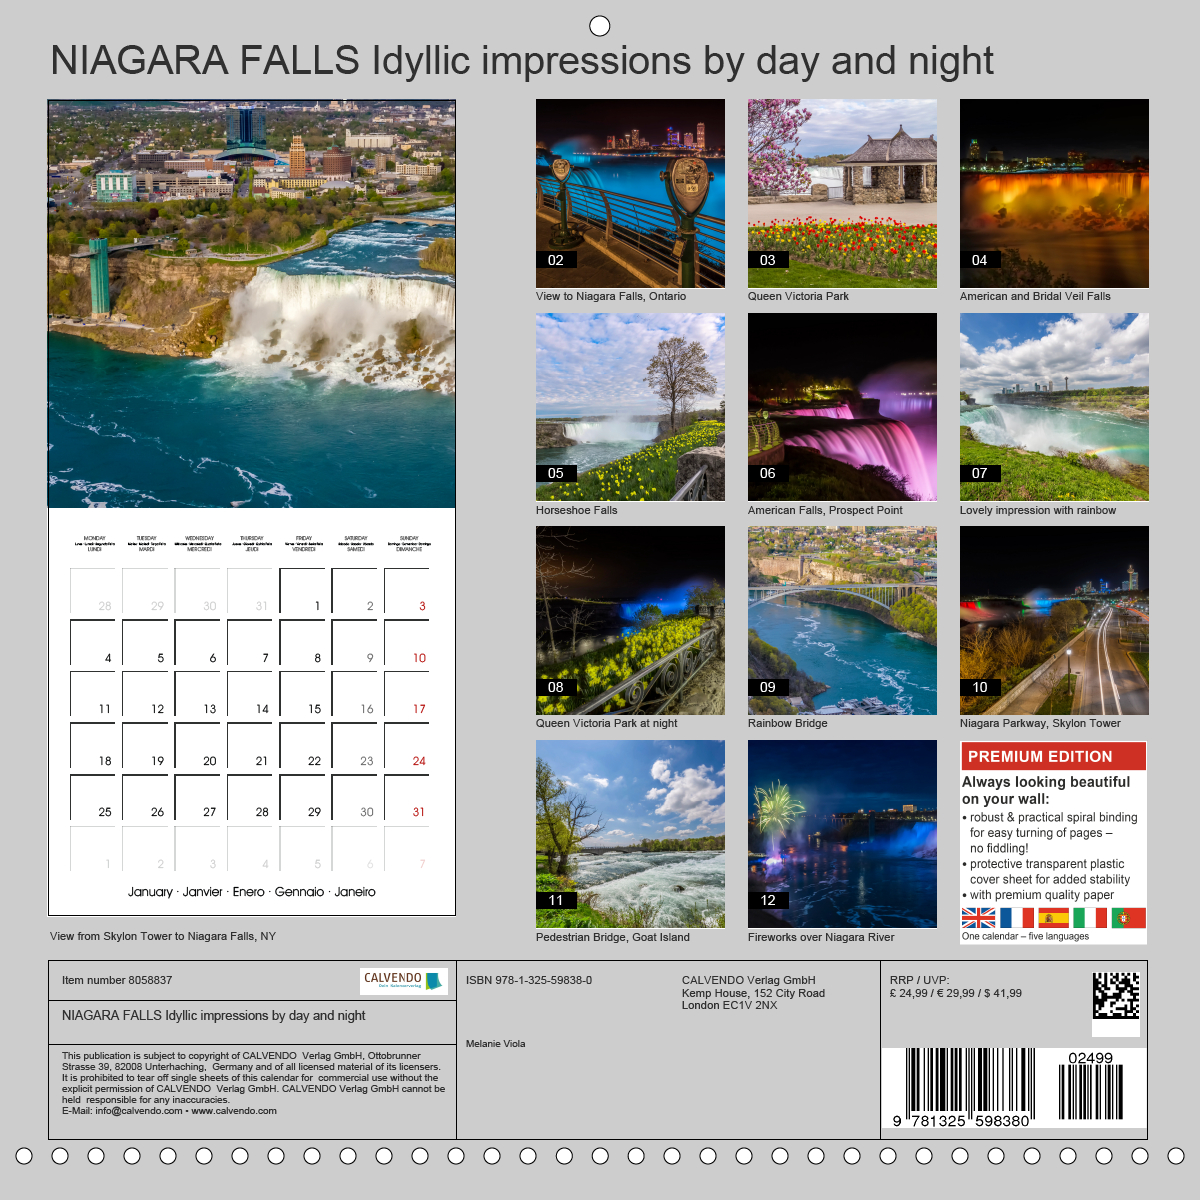 Calendar back - NIAGARA FALLS Idyllic impressions by day and night